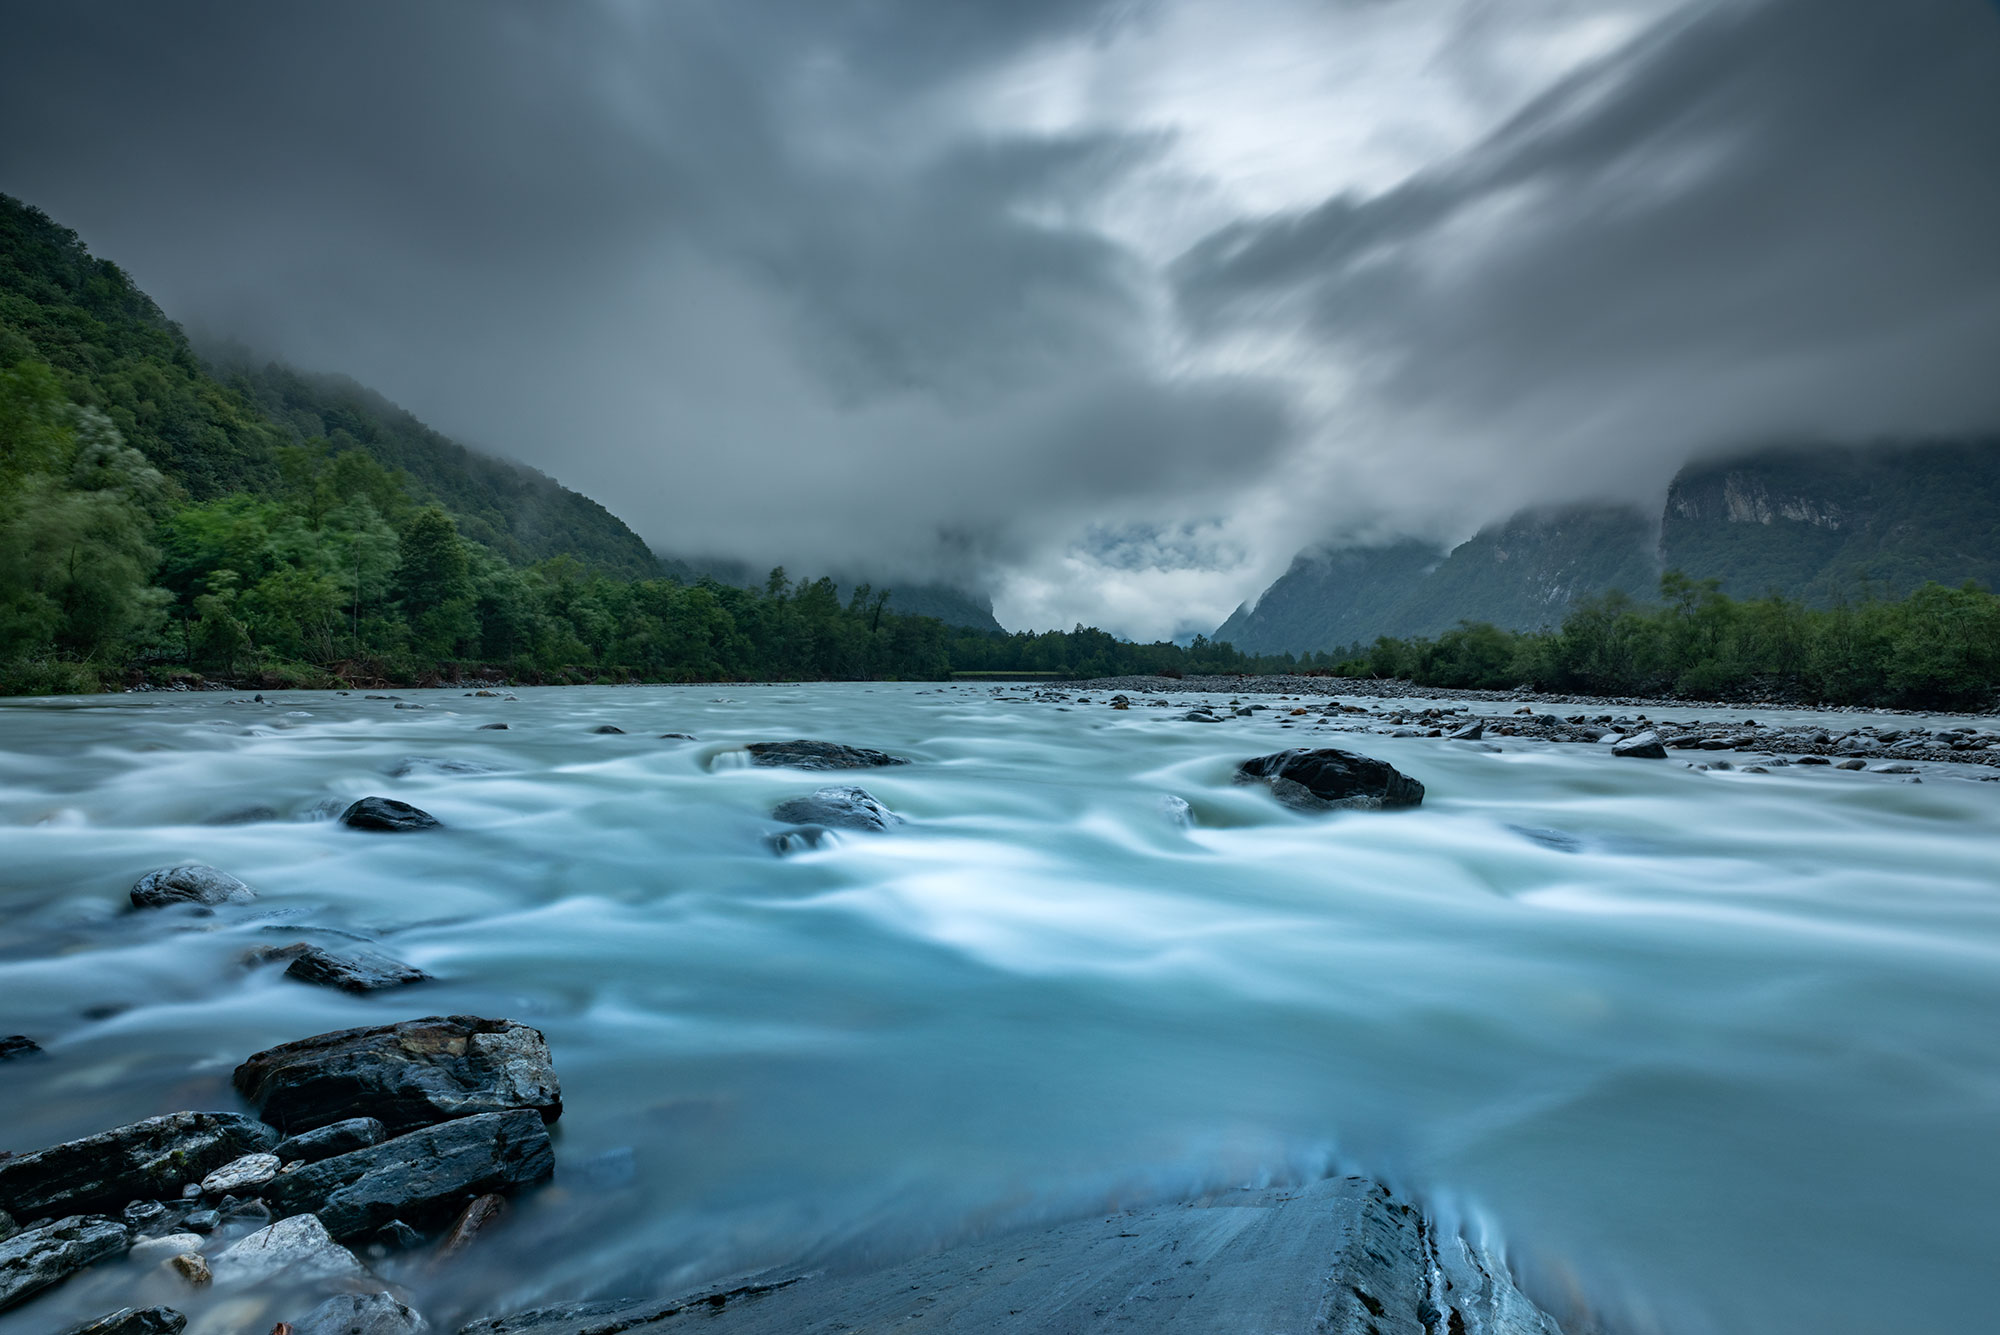 Fine art and long exposure photography of the Maggia River in Ticino, Switzerland. Image by Jennifer Esseiva.